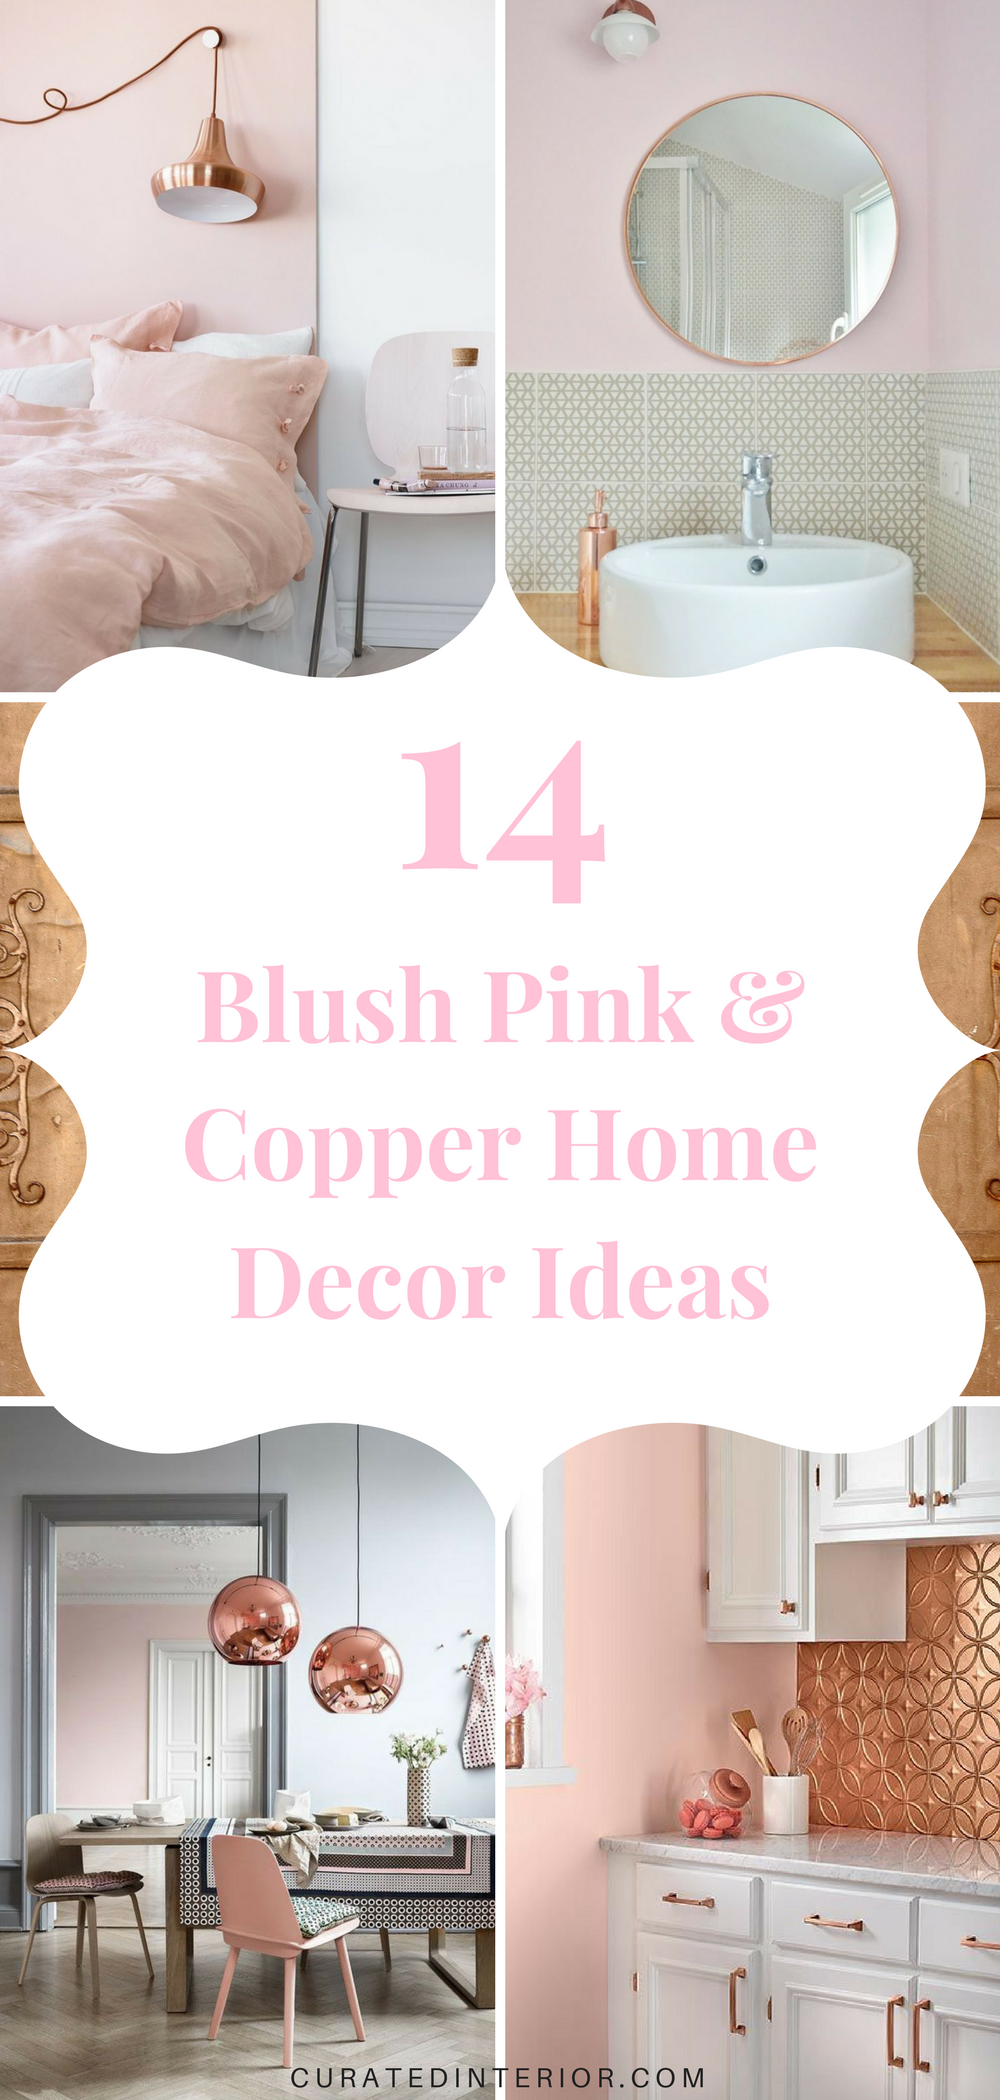 Blush Pink & Copper Home Decor Ideas